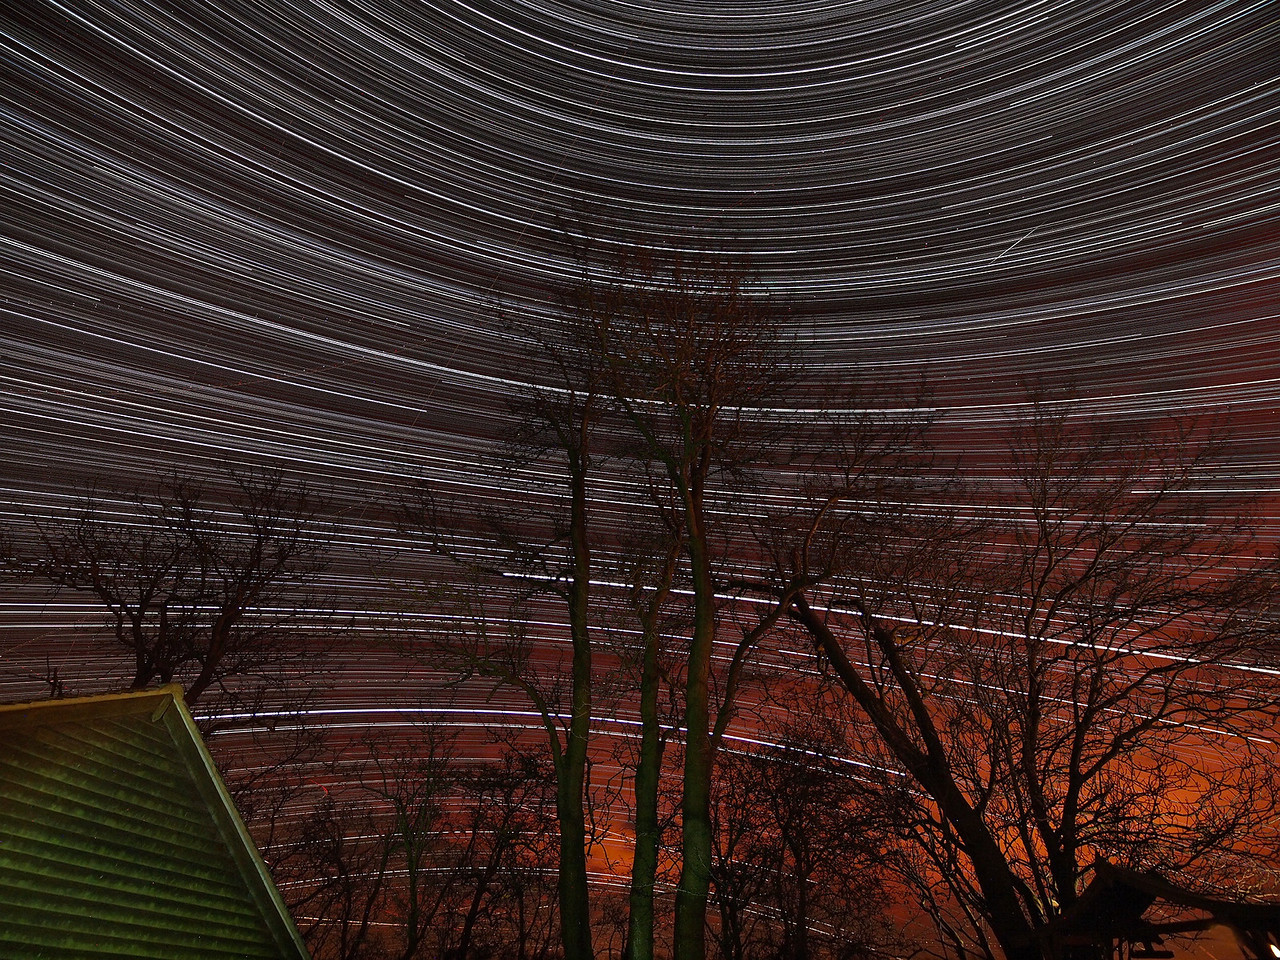 Star Trail captured on evening/morning Dec 8/9th. Looking due south and a very nice example detailing the opposing curvature of the trails above and below the celestial equator. Caught a meteor too (top right). Captured with Olympus E5 & 7-14mm. Temps dropped to -4C overnight and skies were exceptionally clear. Home made dew shield kept the ice/moisture at bay. Camera was put outside at approx 7pm and left out all night for 12 hrs of continuous shooting. 15s exposure @ F4 via remote cable locked for cont shooting. 3000 images imported and stacked to produce final exposure.